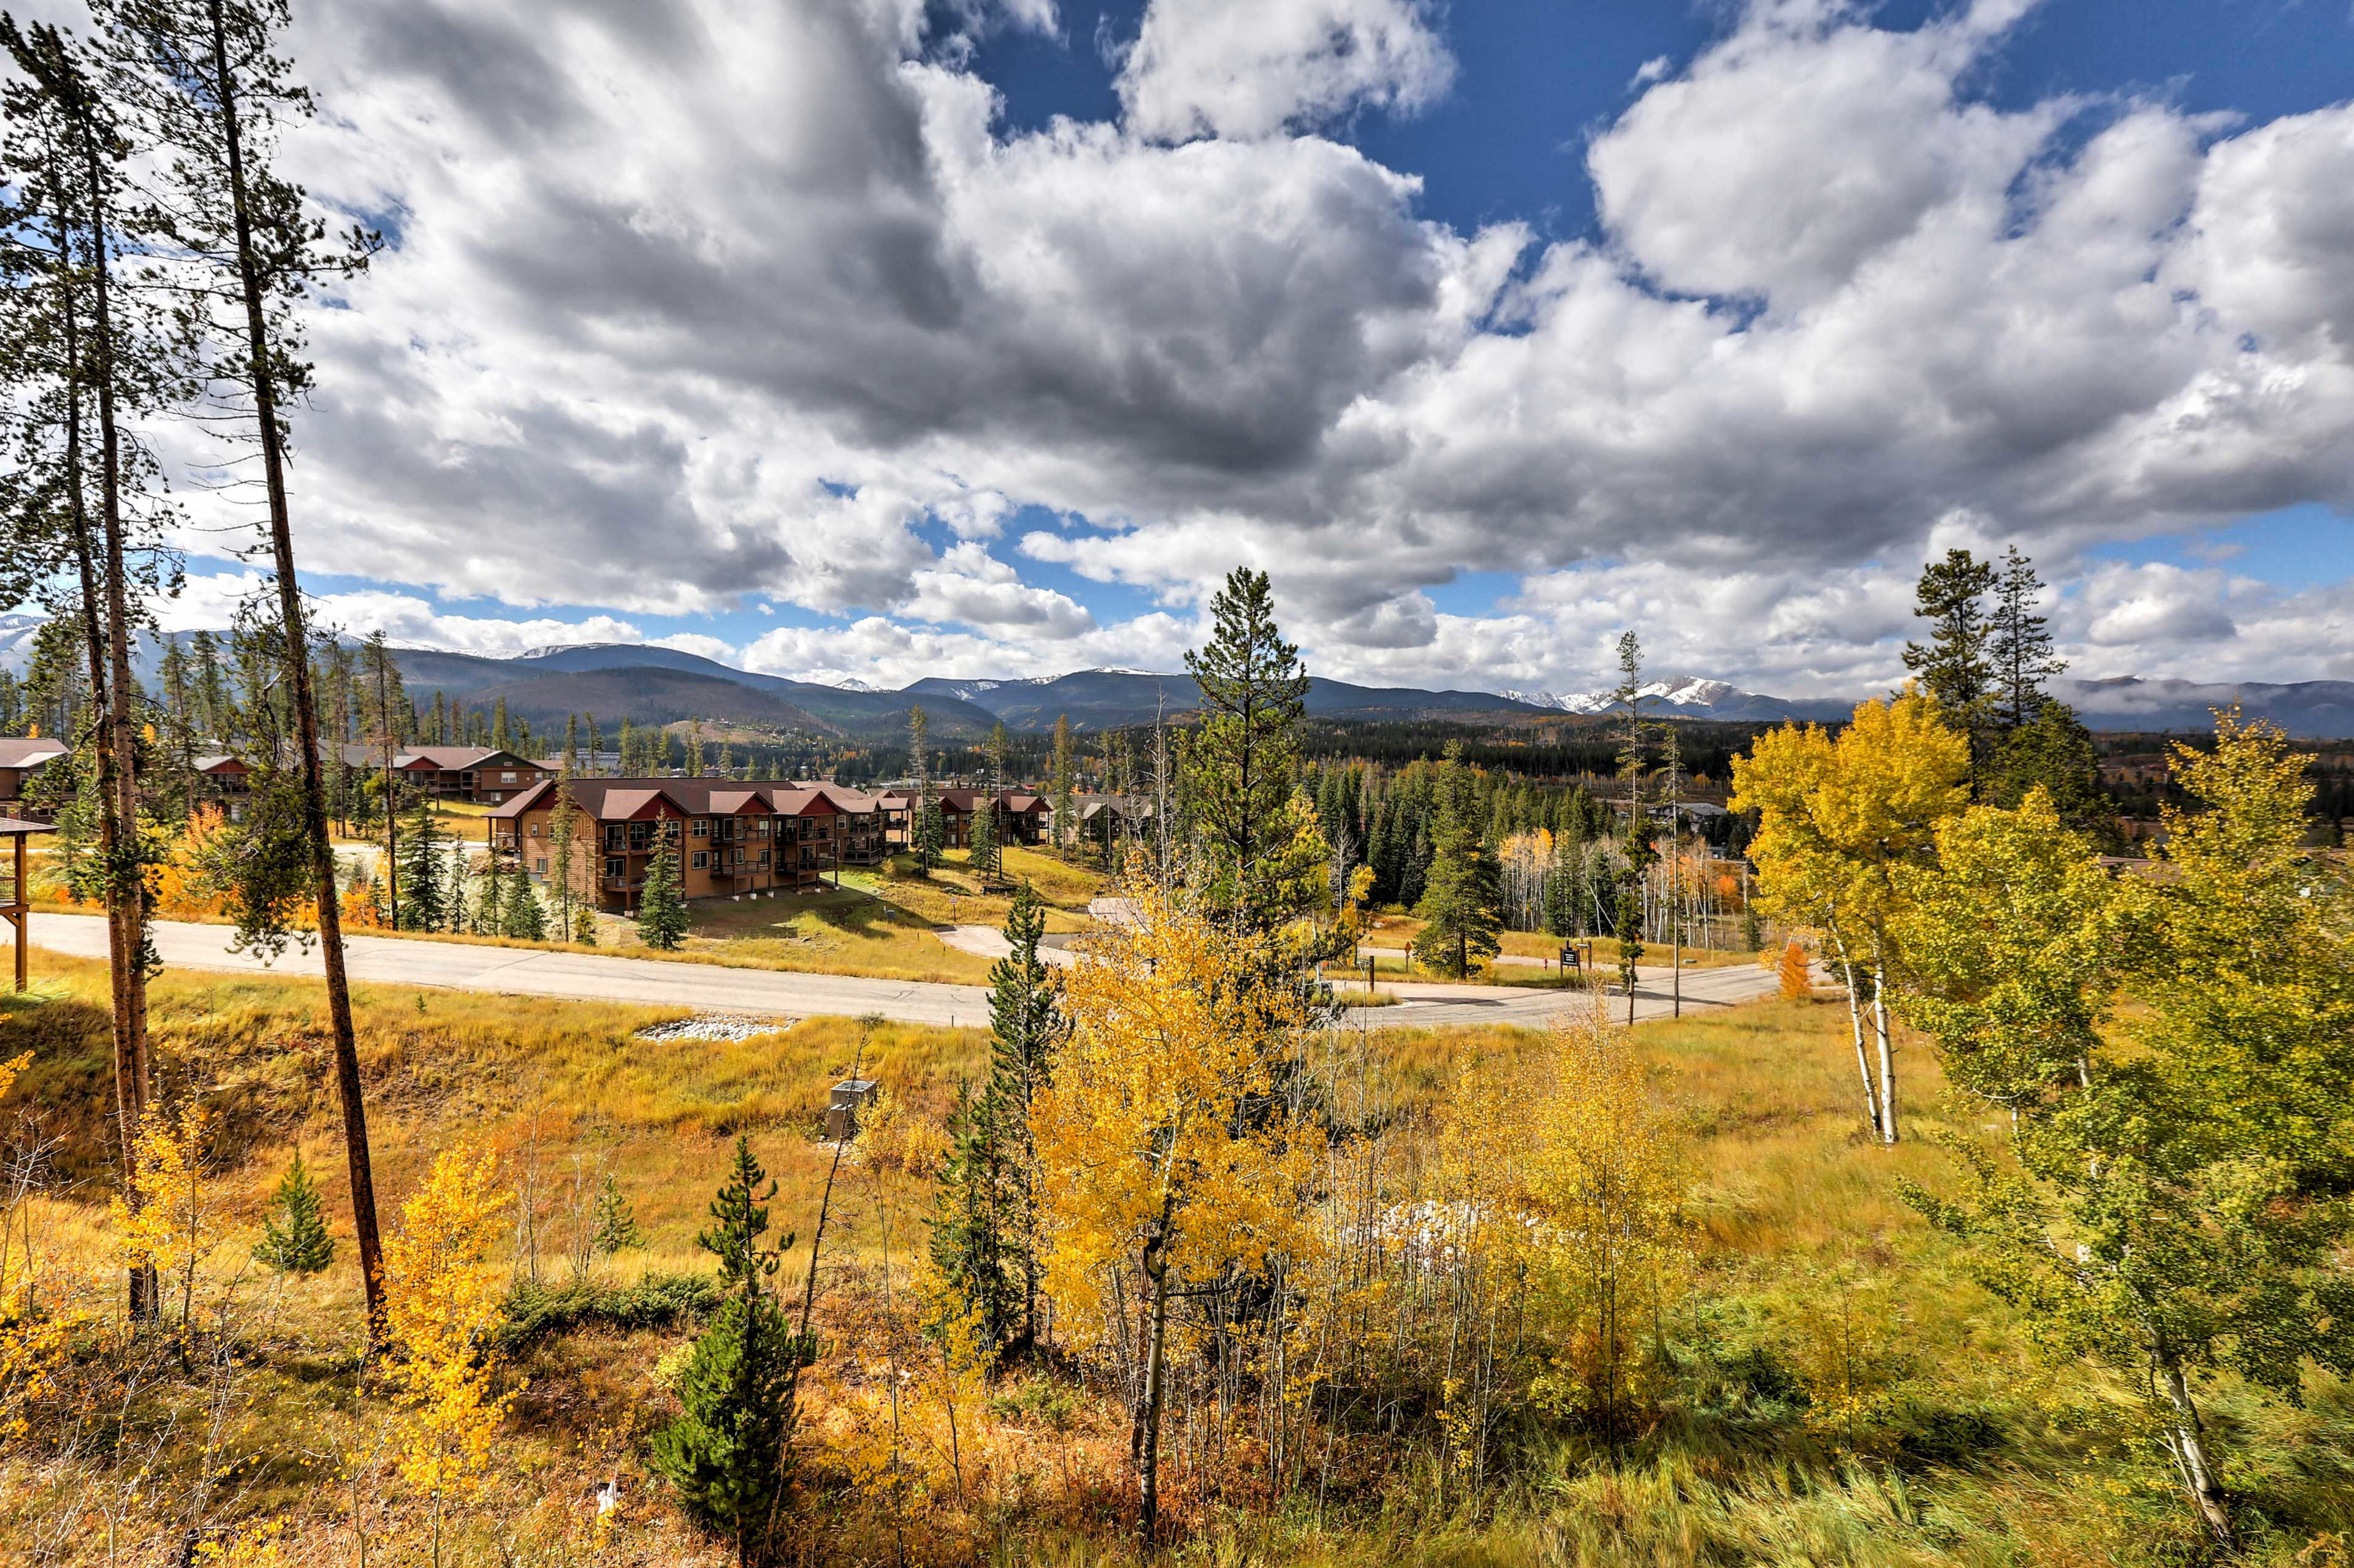 Enjoy outdoor trails and a 10 minute walk to the town of Winter Park.